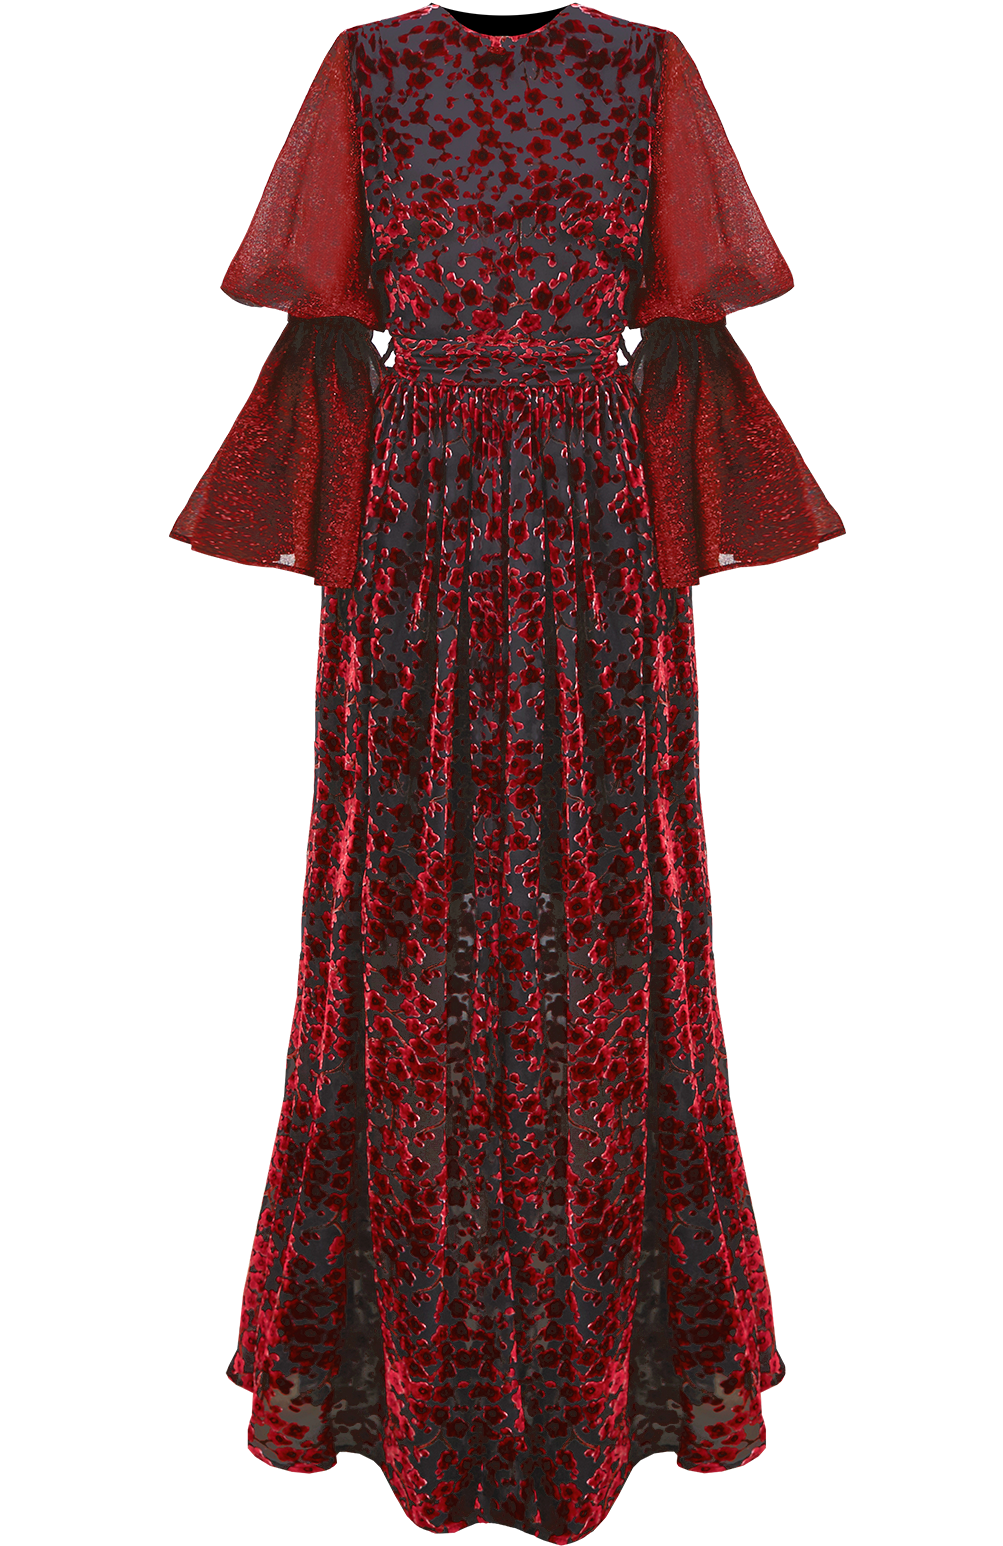 Scarlet Floor Length Dress by Georgia Hardinge on curated-crowd.com